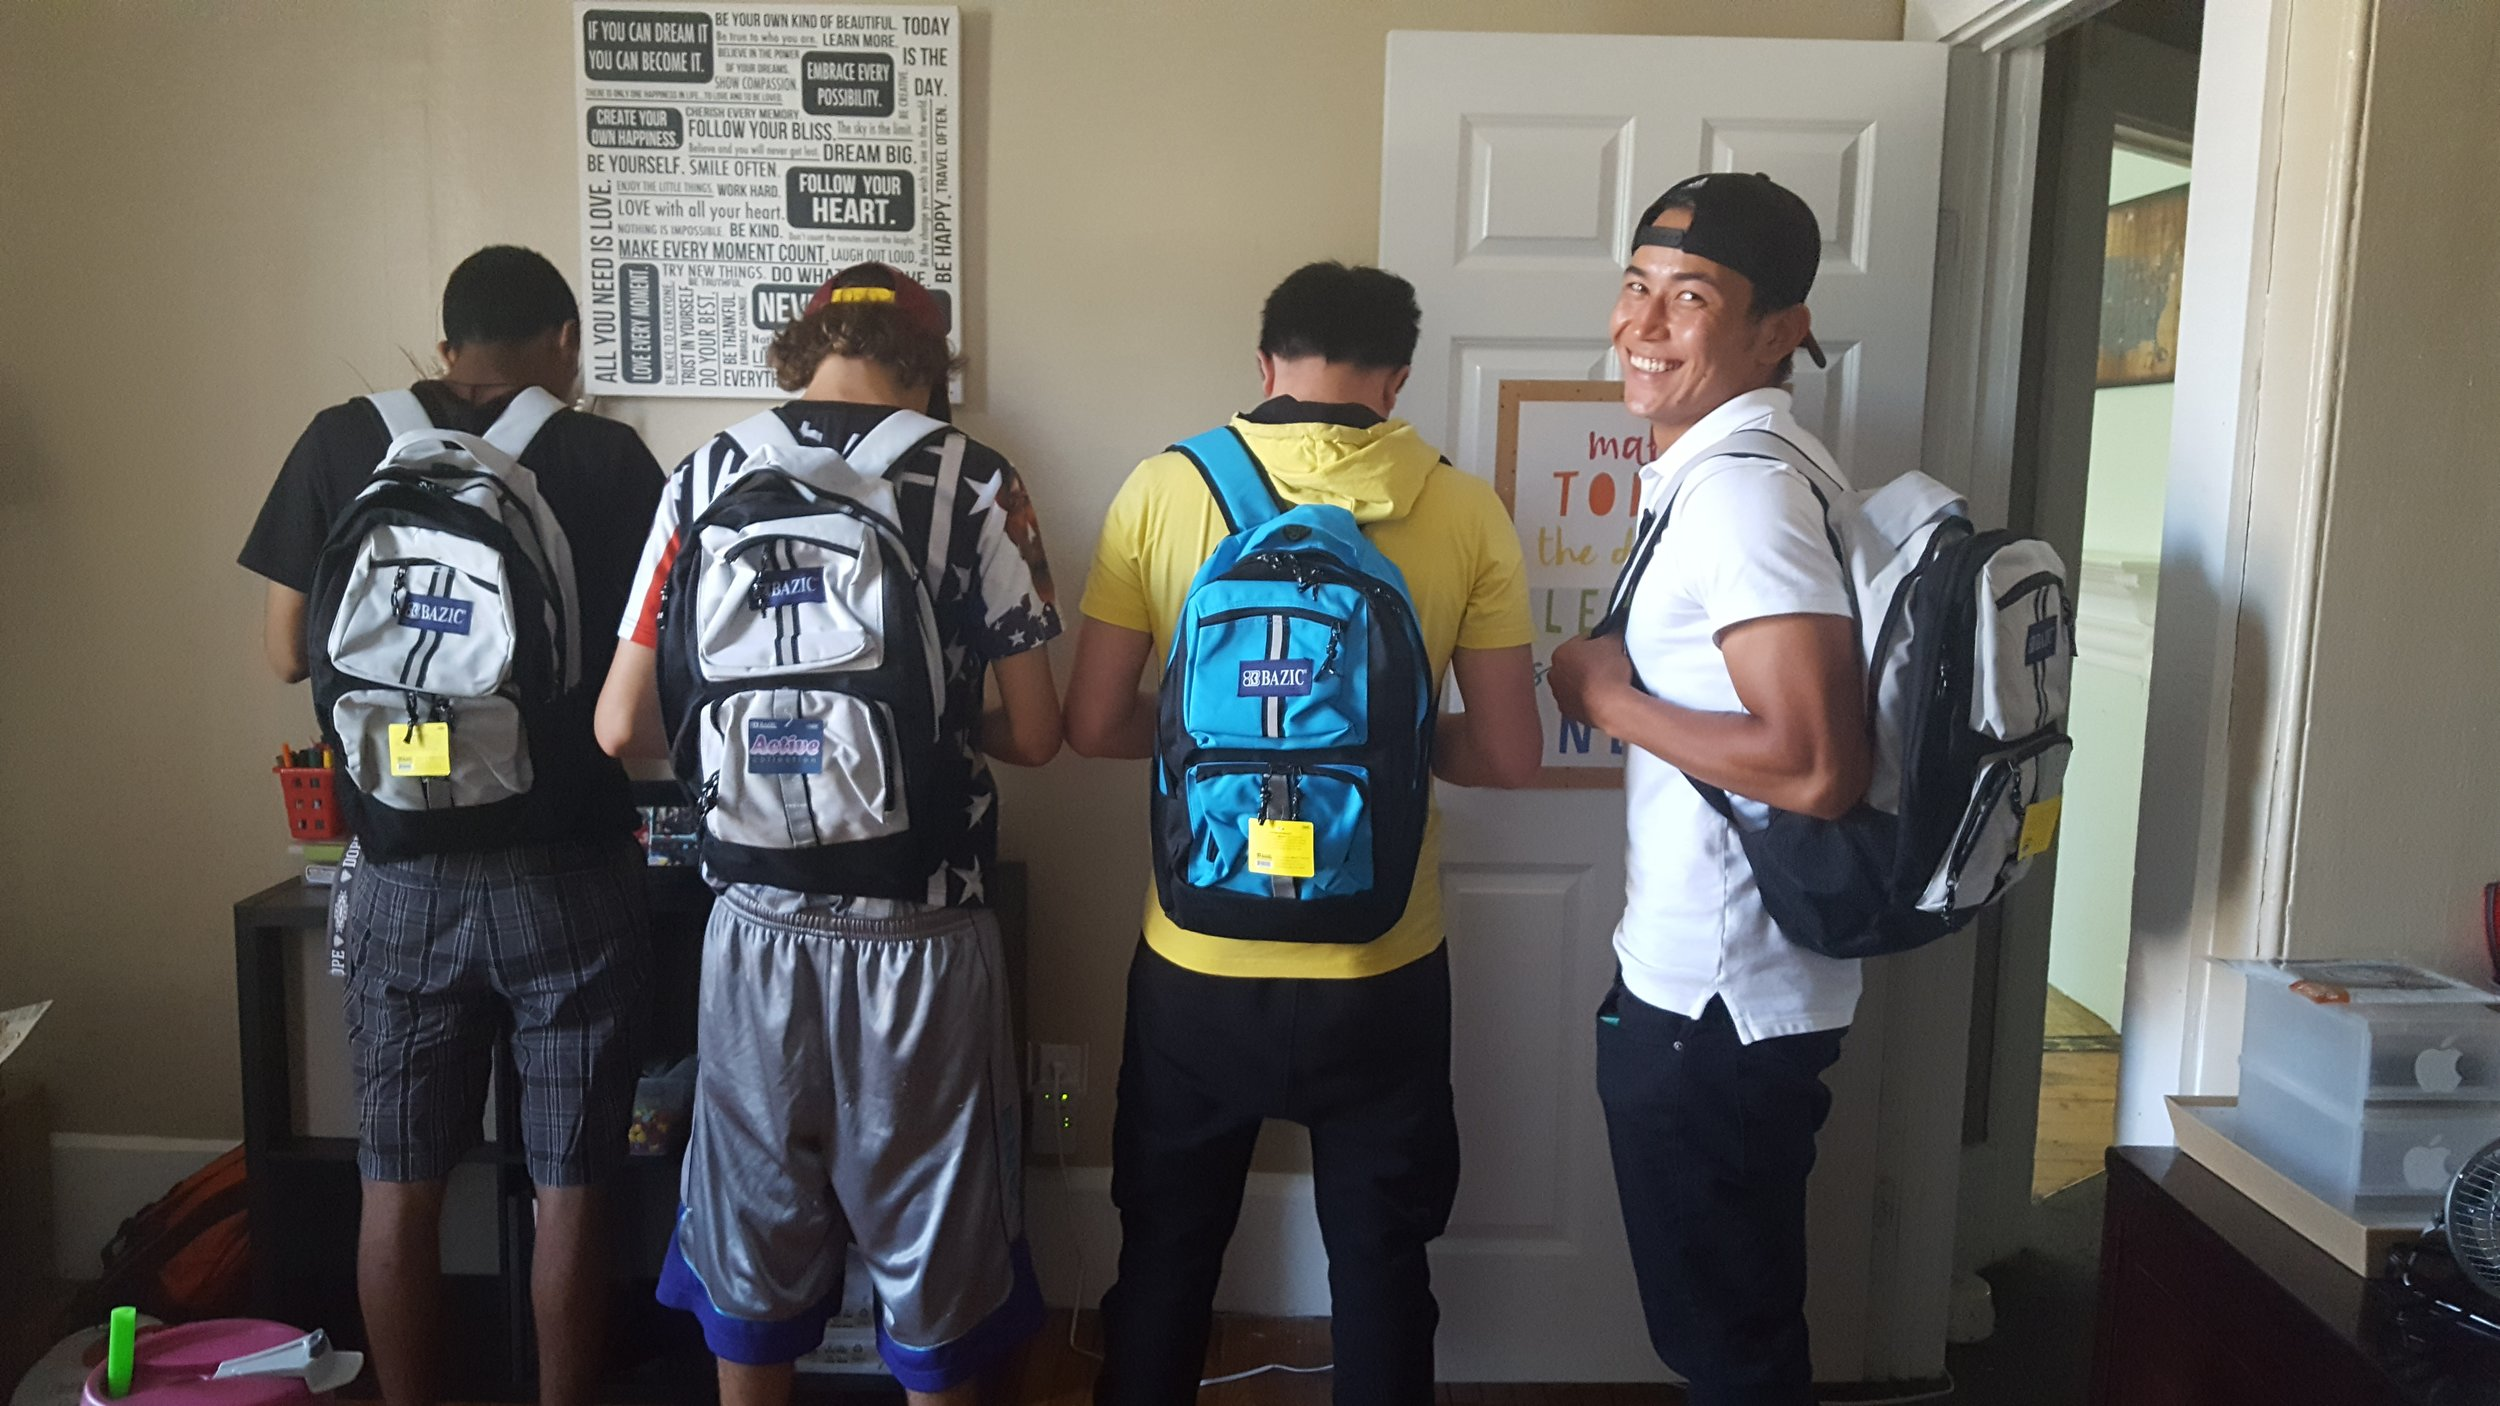 Getting ready for school at Putnam Place